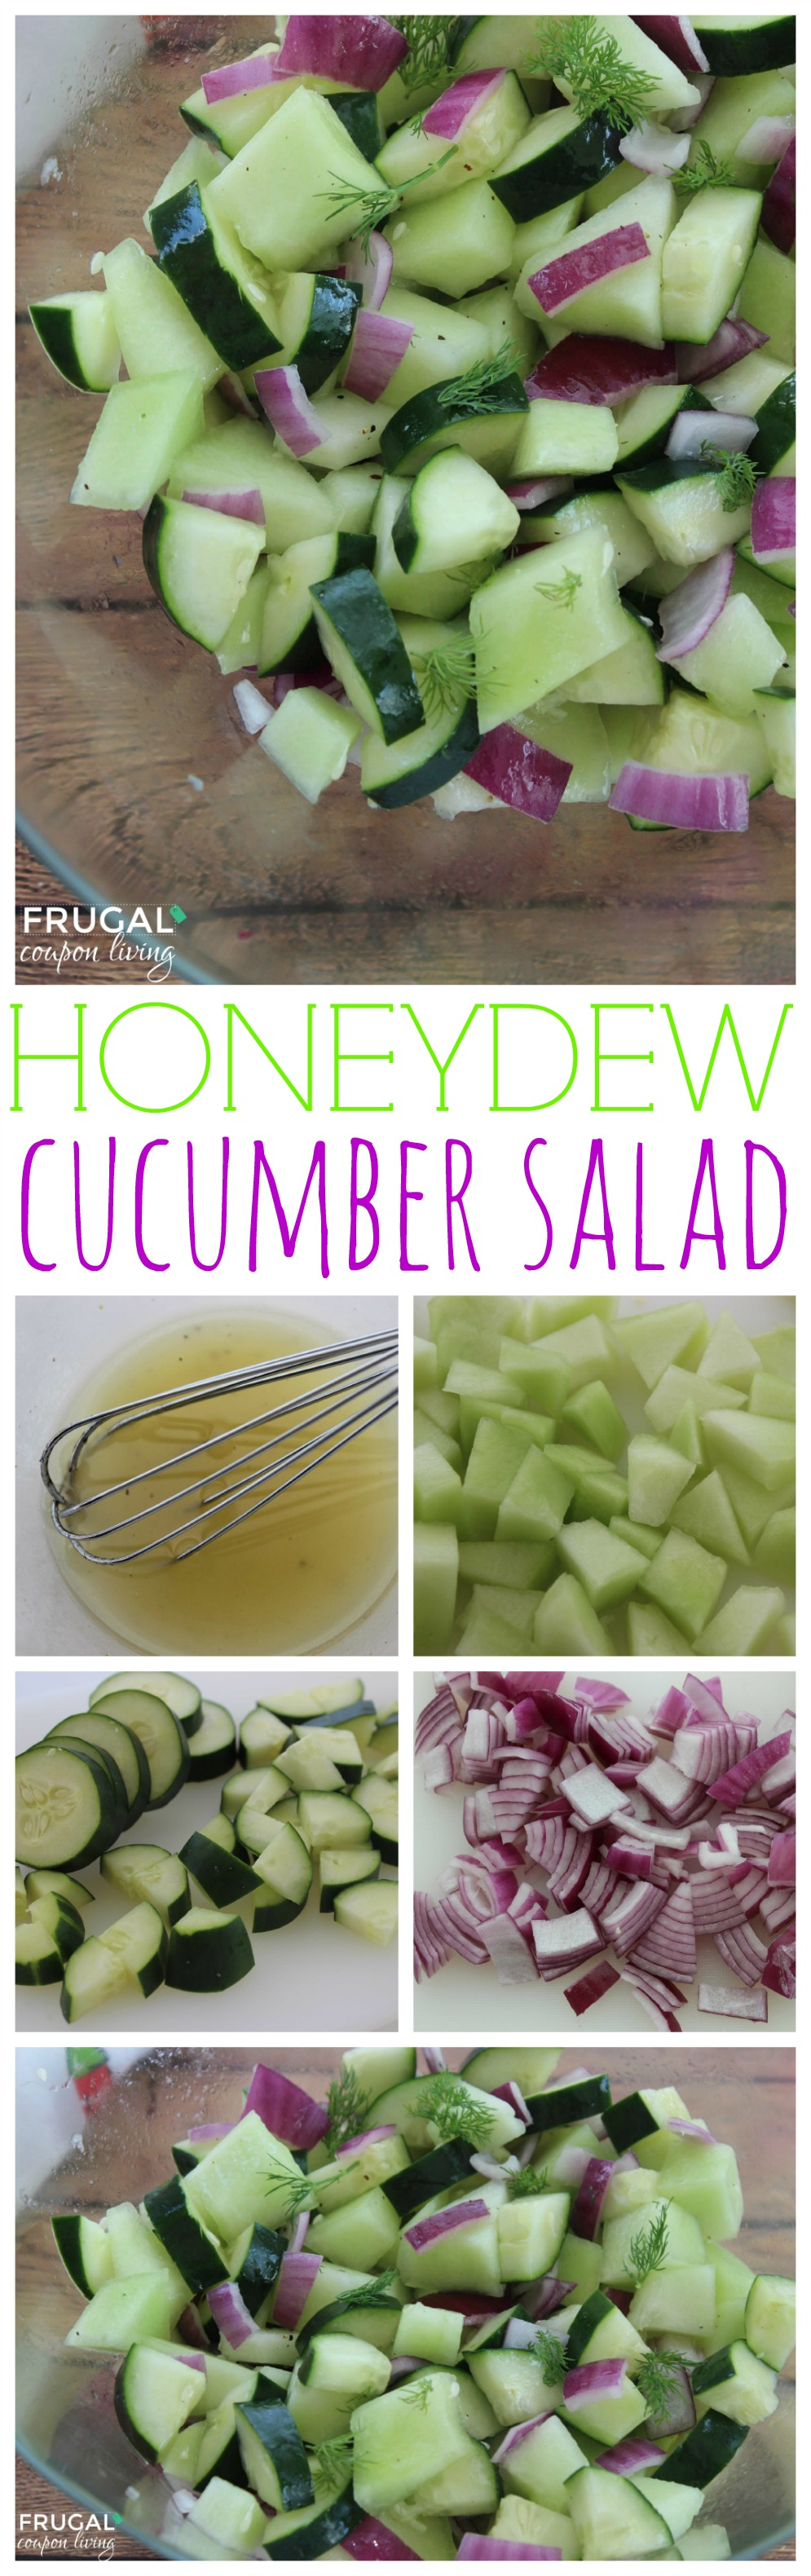 honeydew-cucumber-salad-Collage-frugal-coupon-living